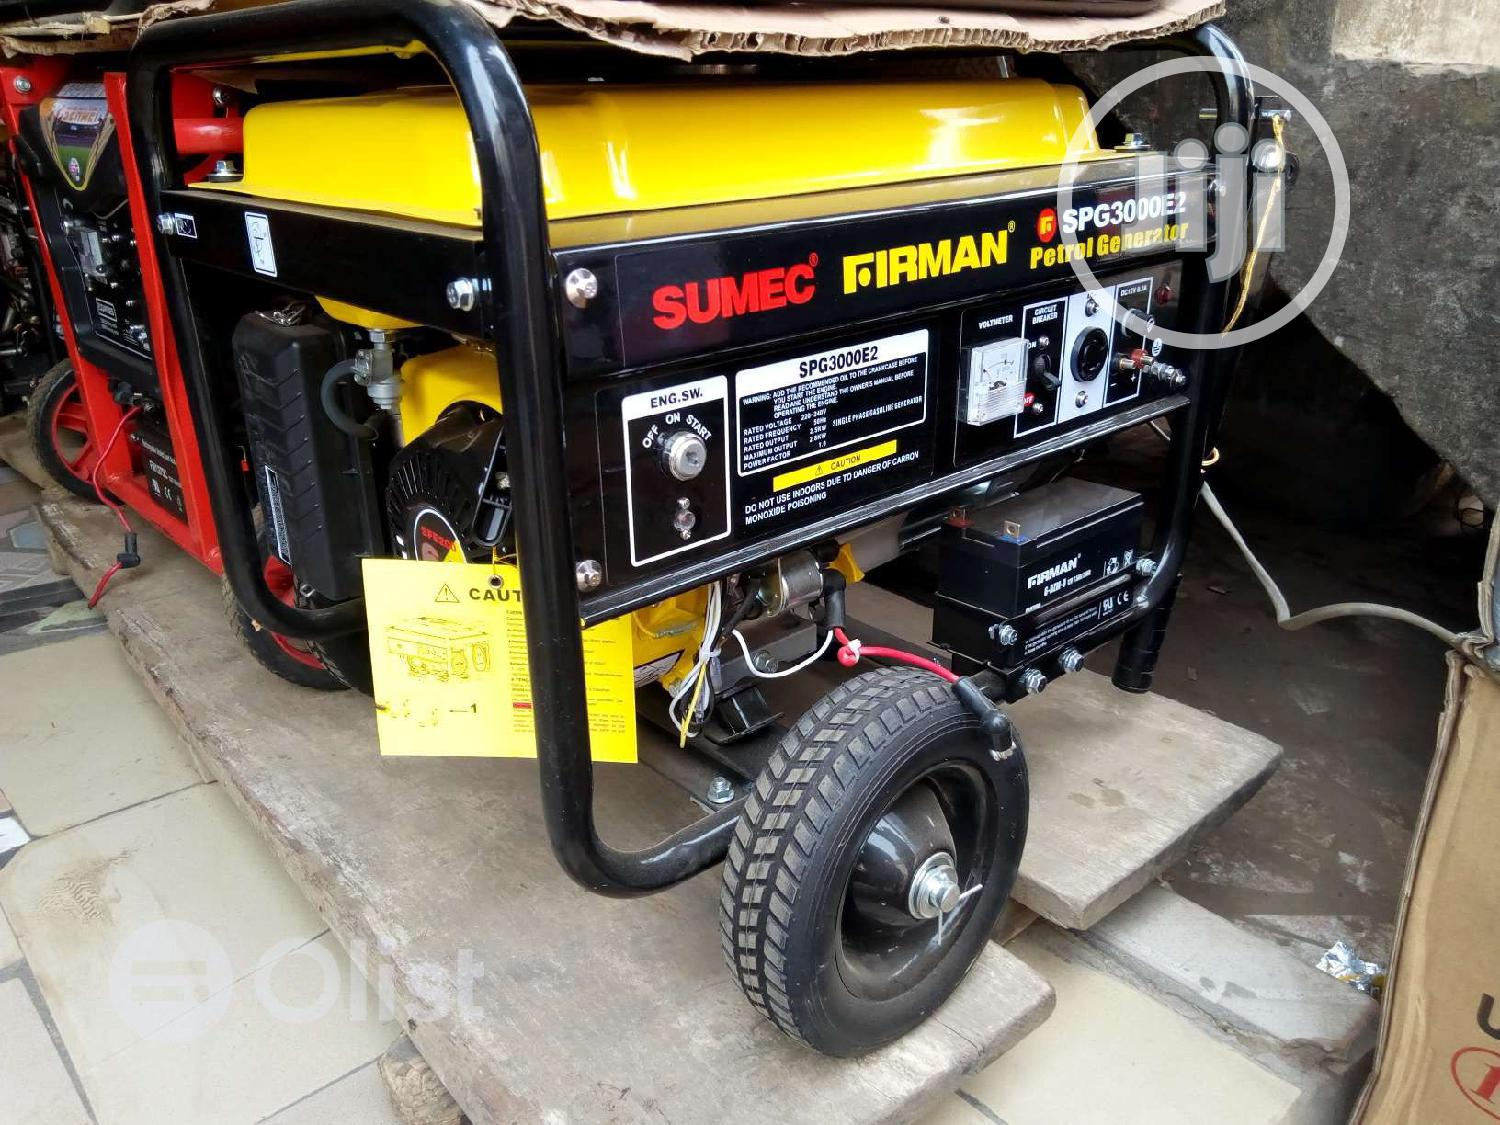 Archive: Sumec Firman 2.8KVA (Spg3000es) With Key Starter Pure Copper